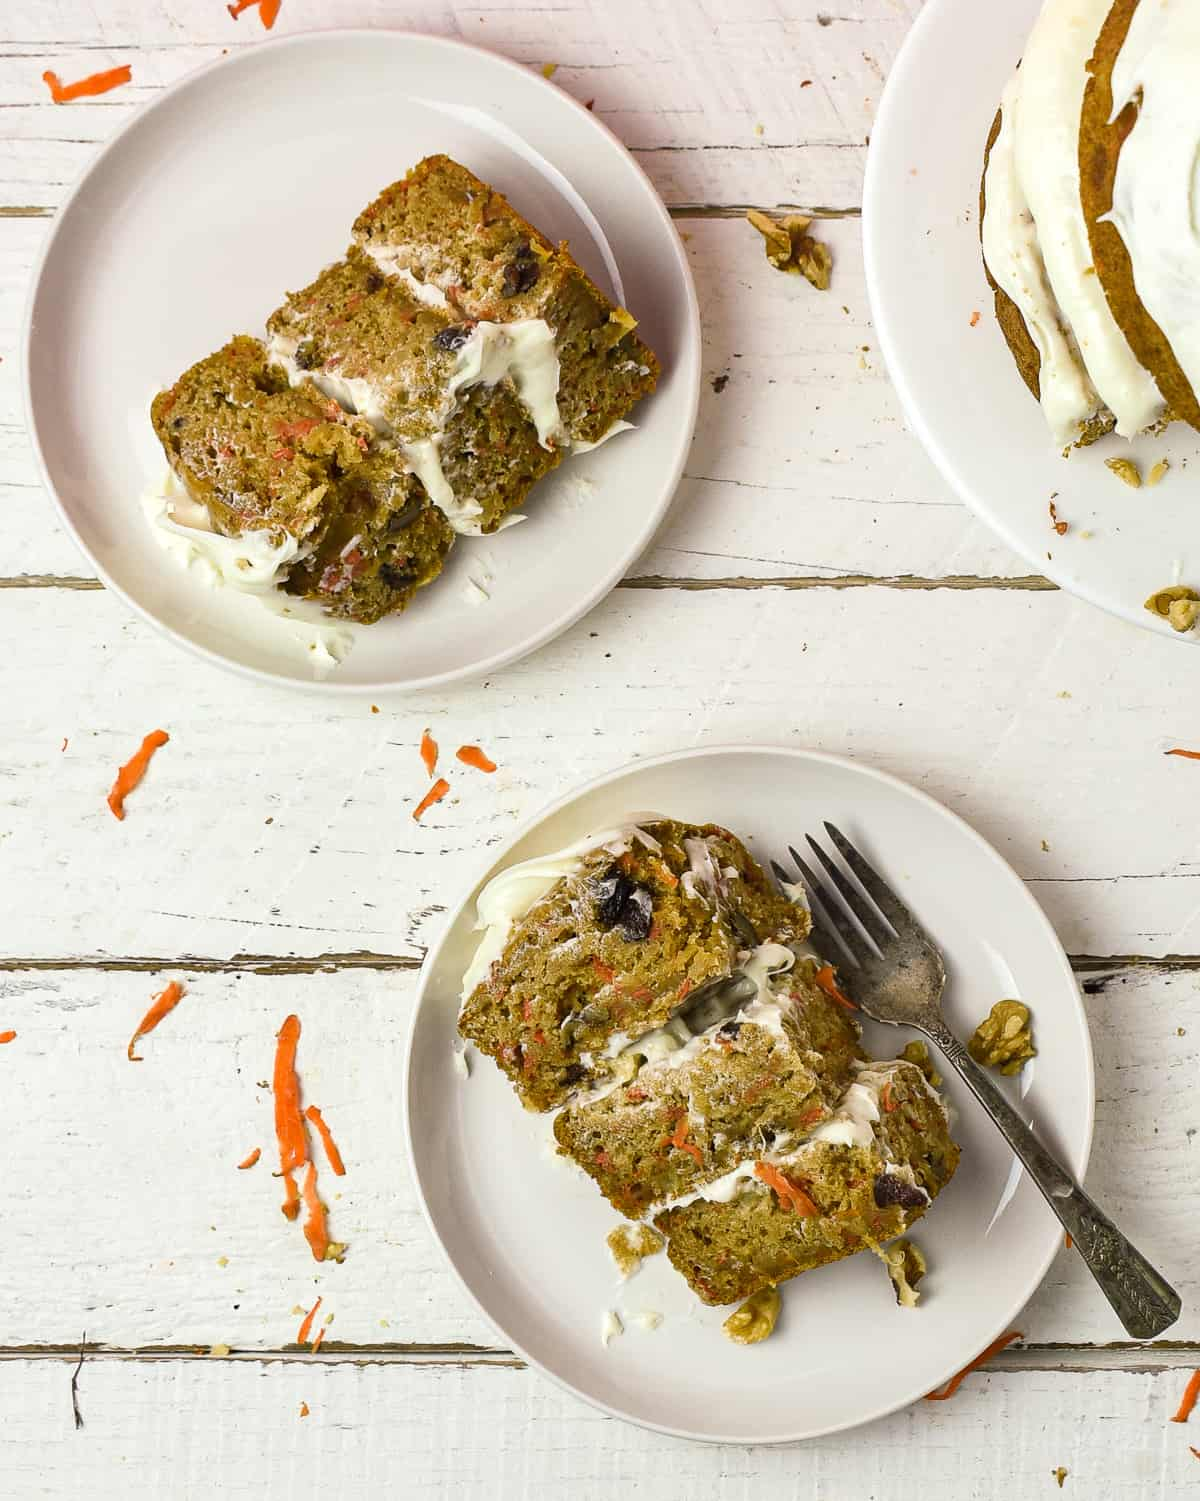 Two slices of vegan carrot cake on plates.